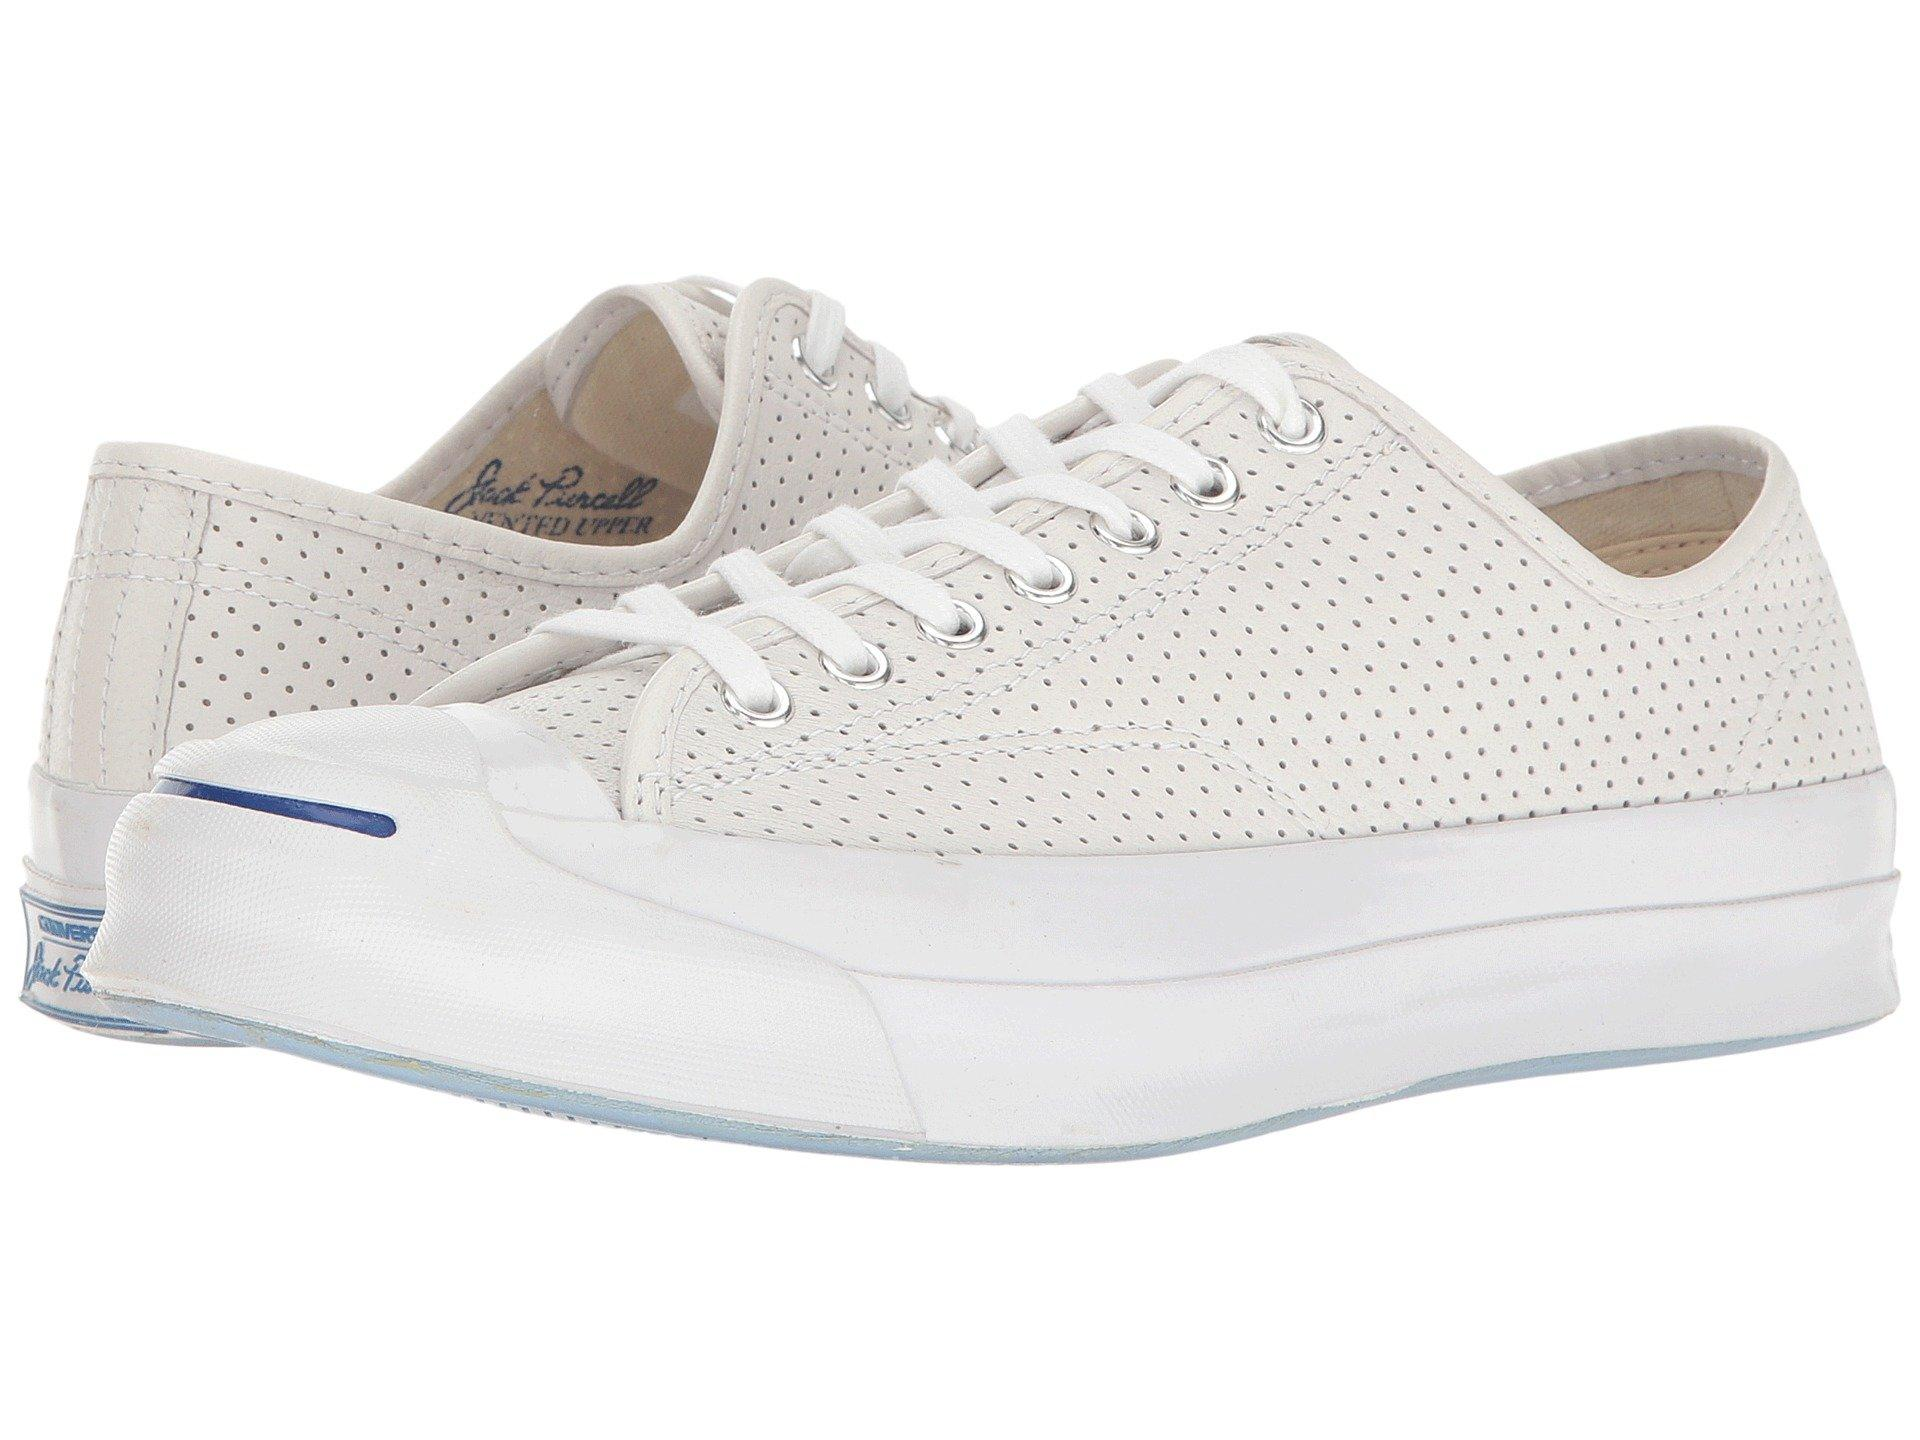 bcc4d78b3e14 Lyst - Converse Jack Purcell® Signature Perf d Goat Leather Ox in ...